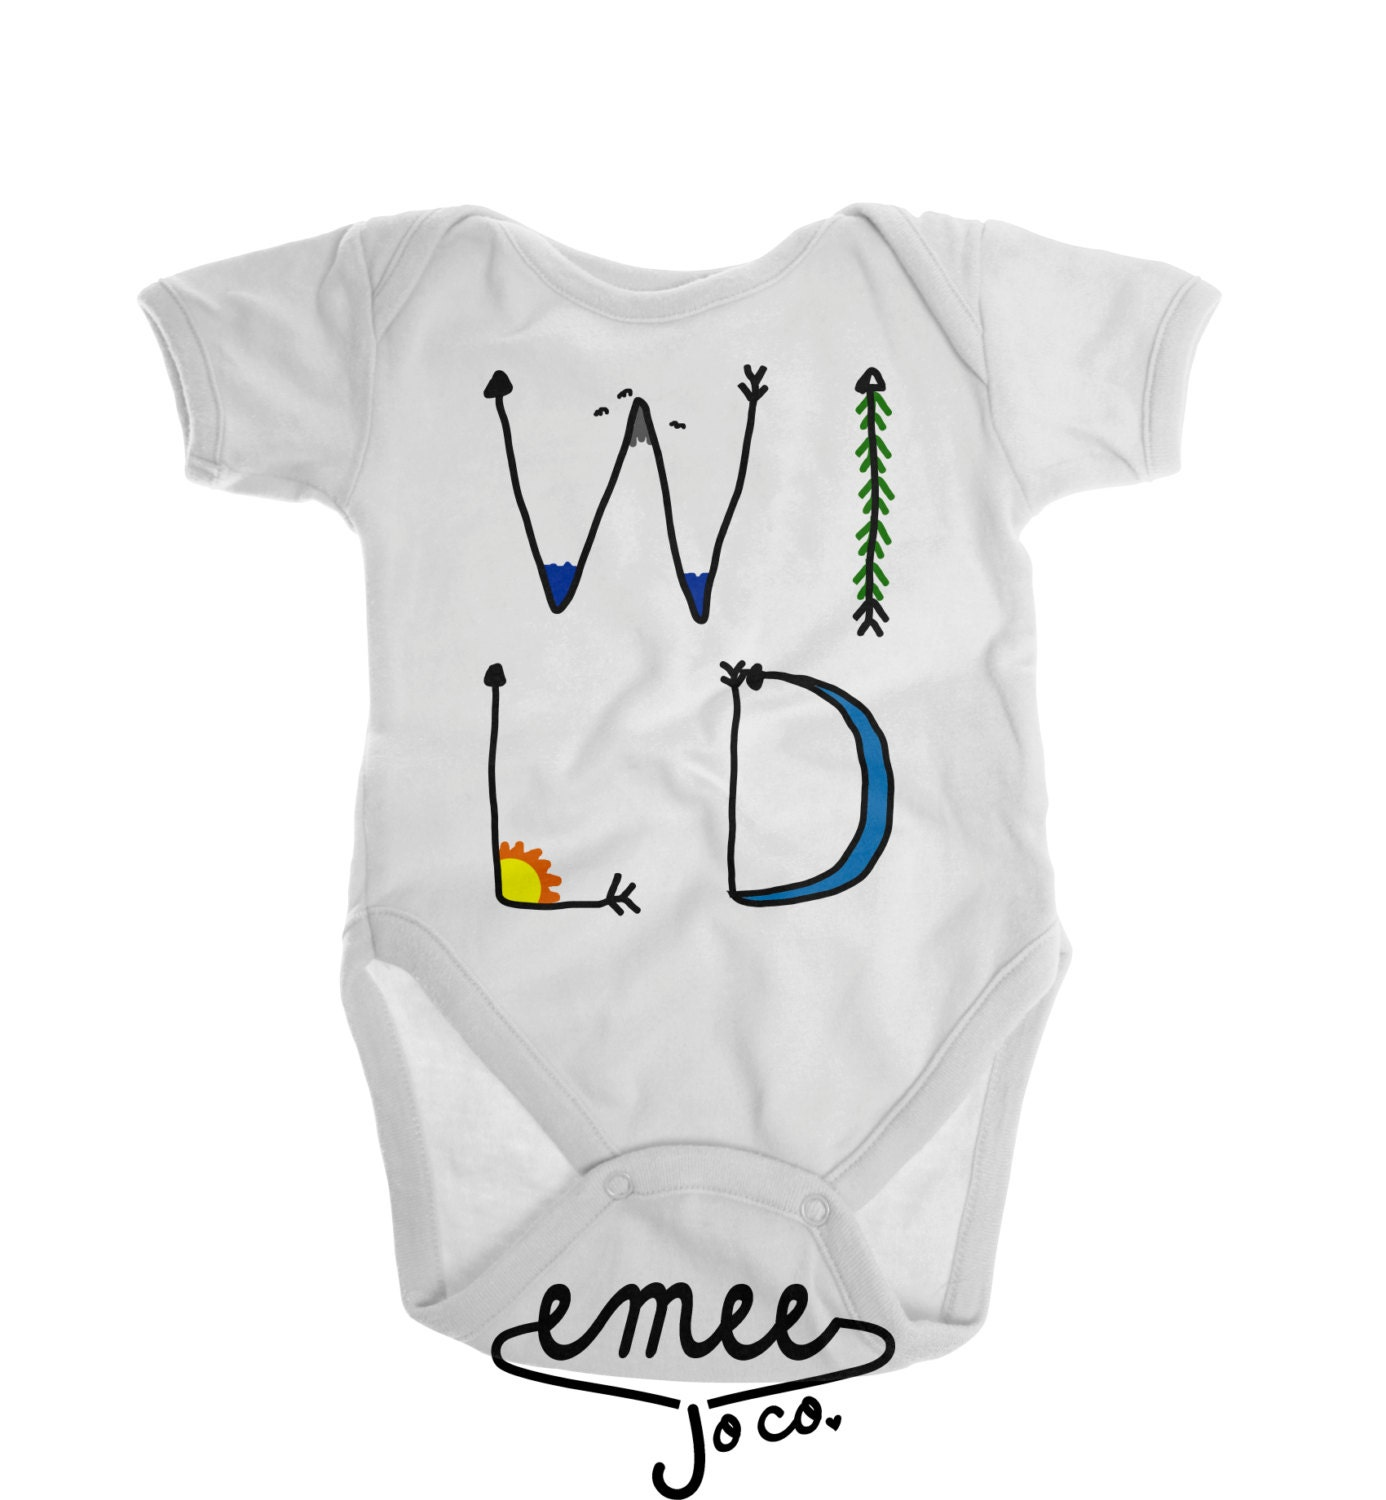 Bohemian Baby Clothes Wild Shirt Gender Neutral Baby by